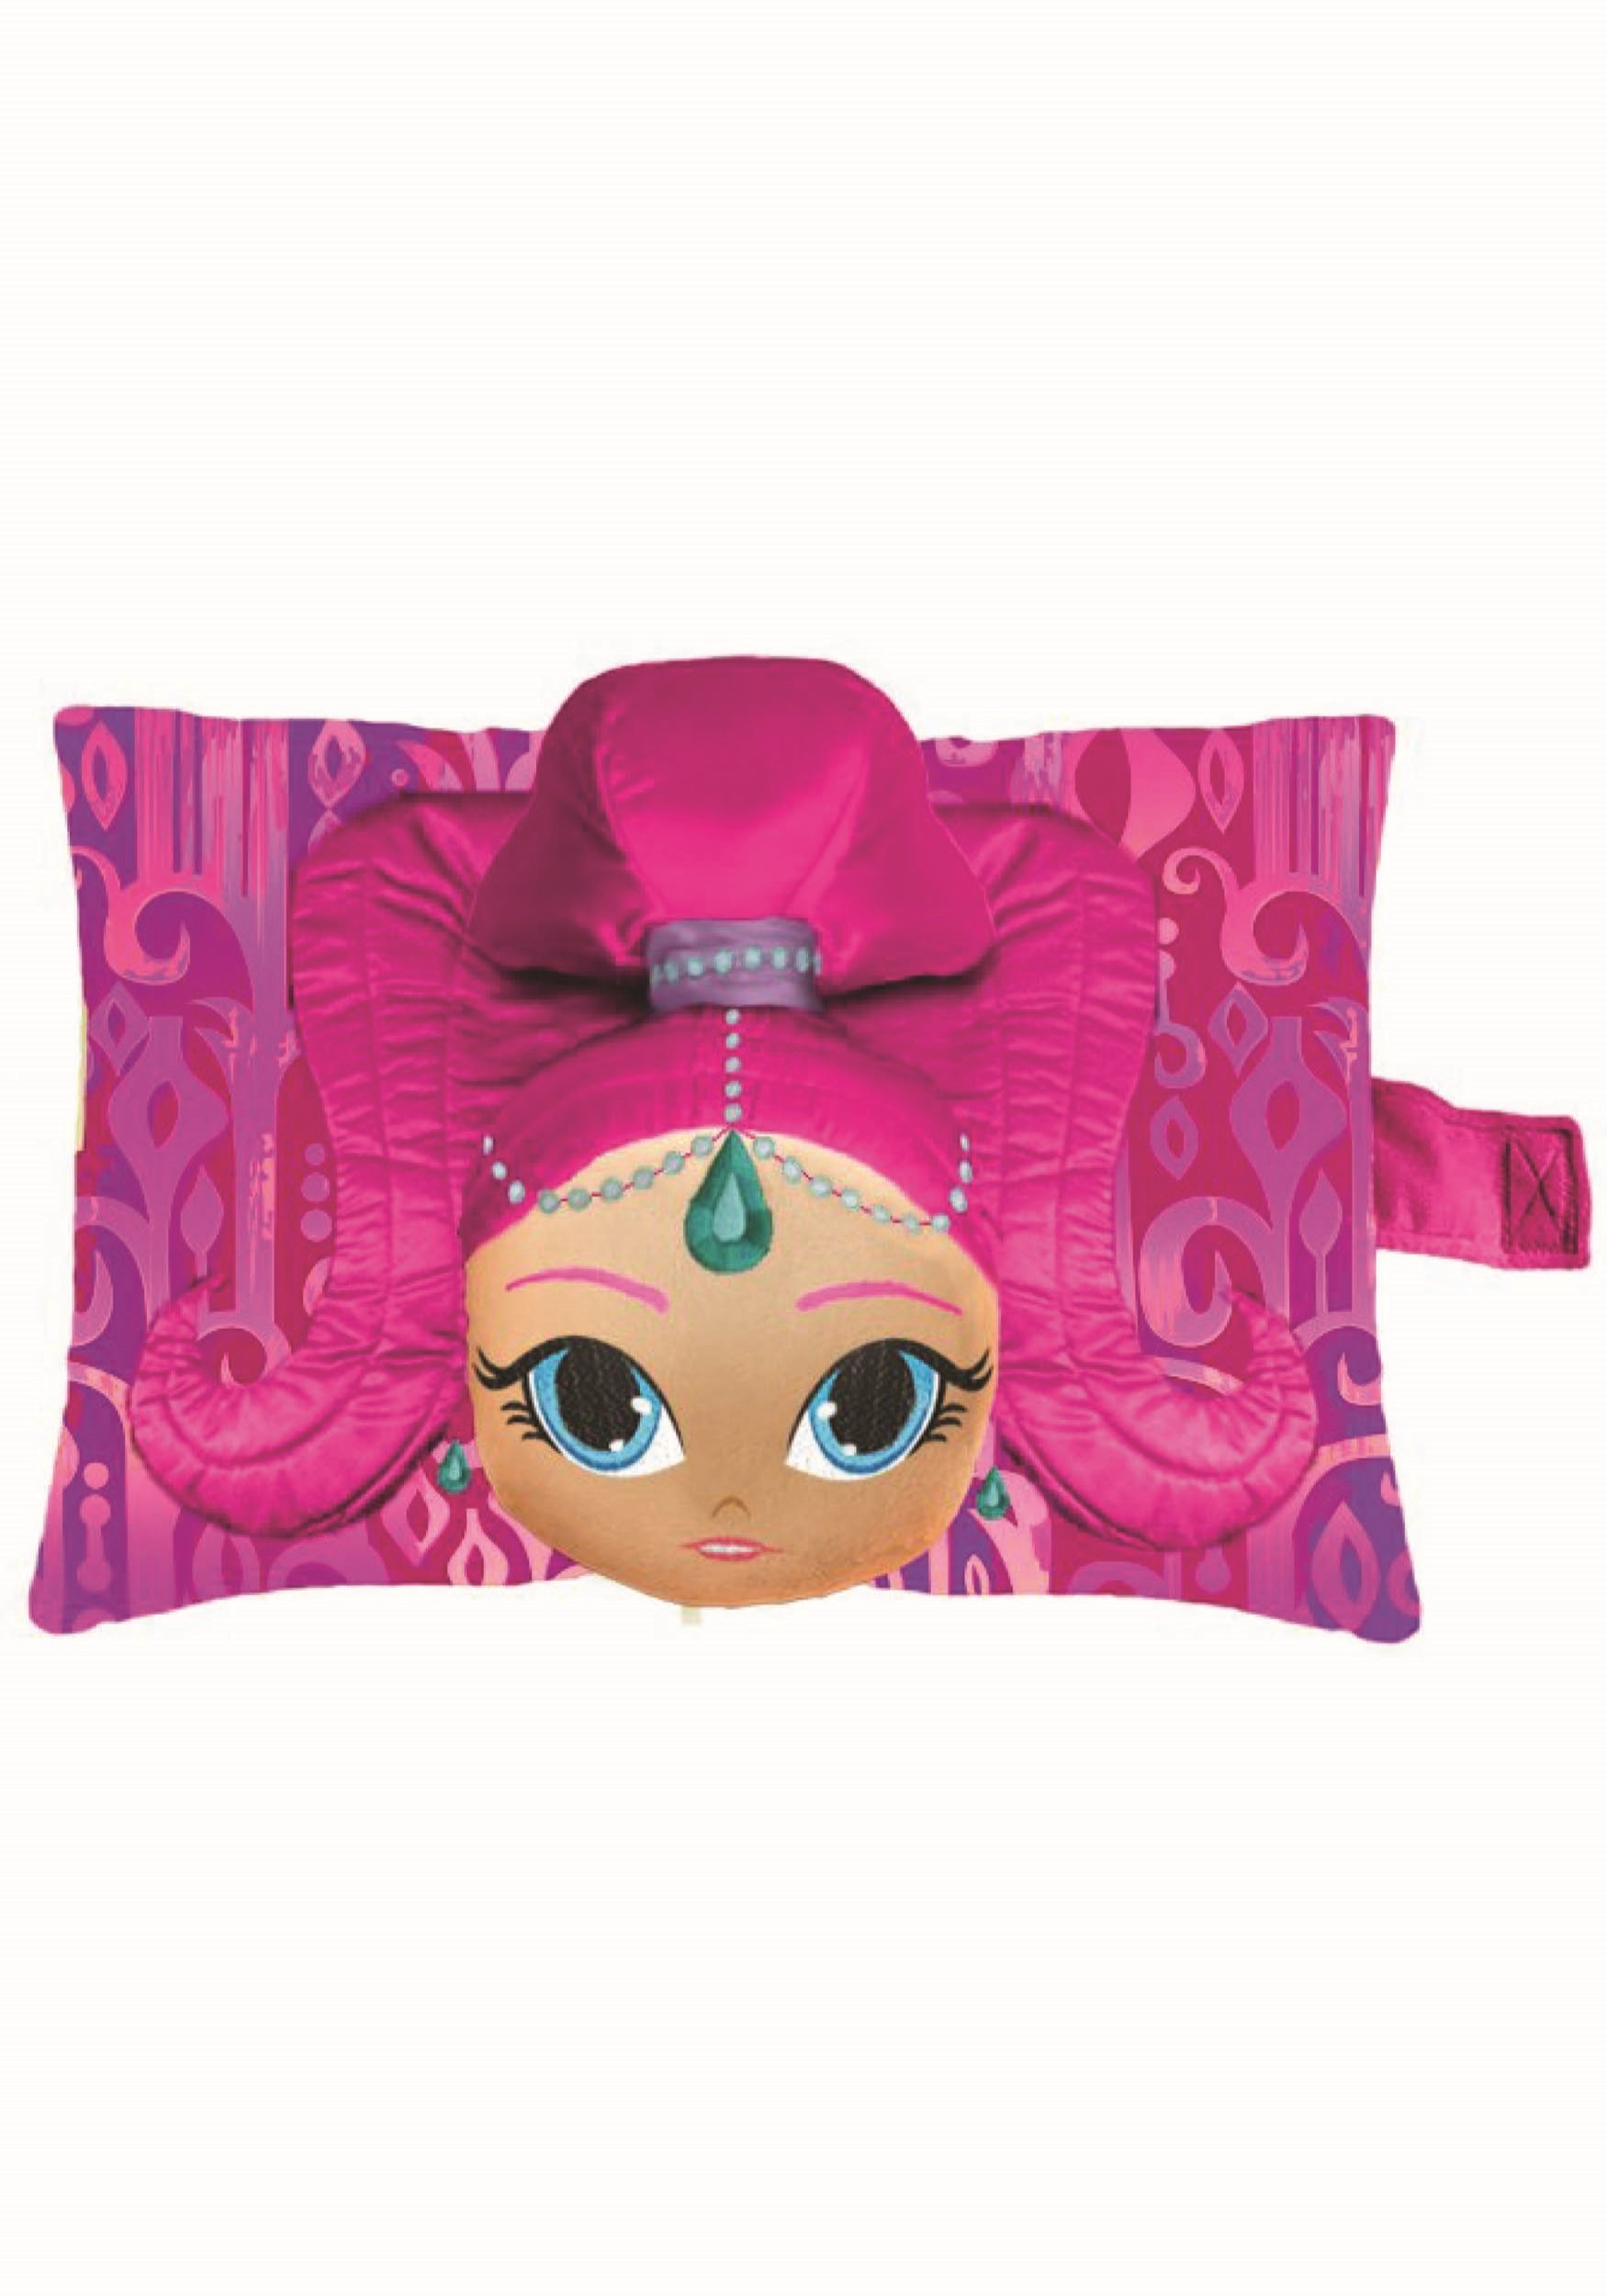 Shimmer Amp Shine Shimmer Pillow Pet